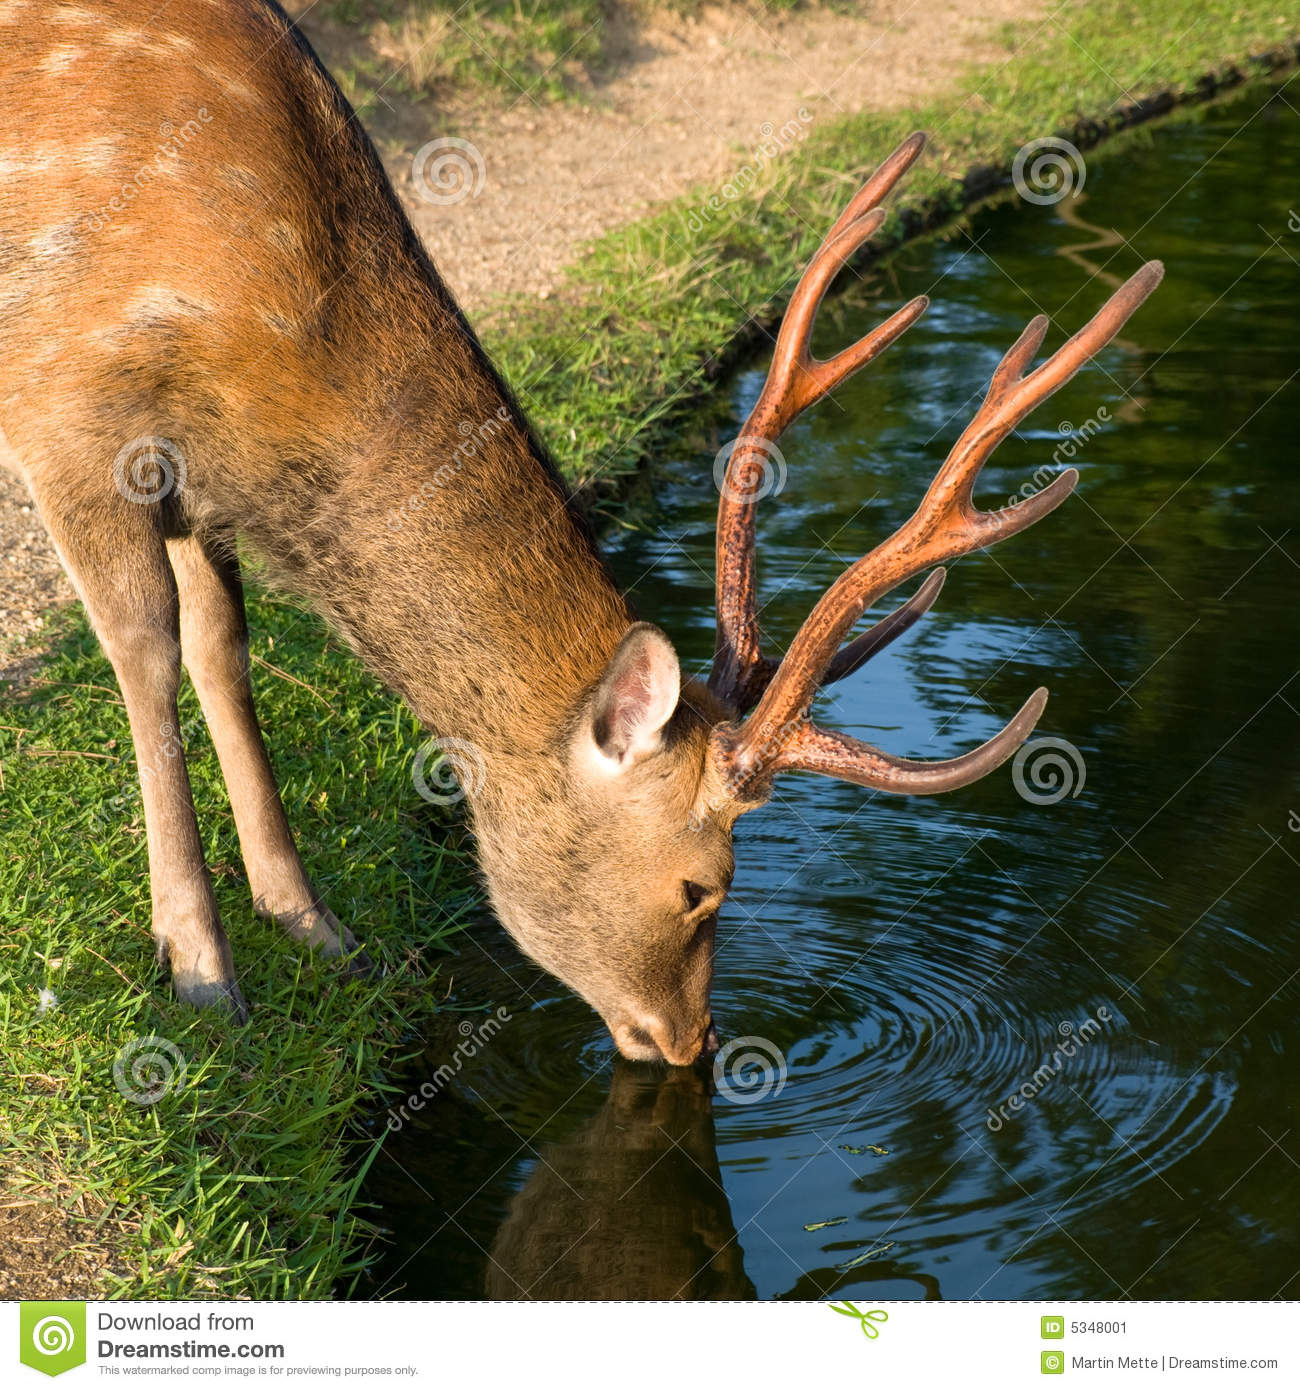 Deer Drinking Water Stock Photos, Images, & Pictures.